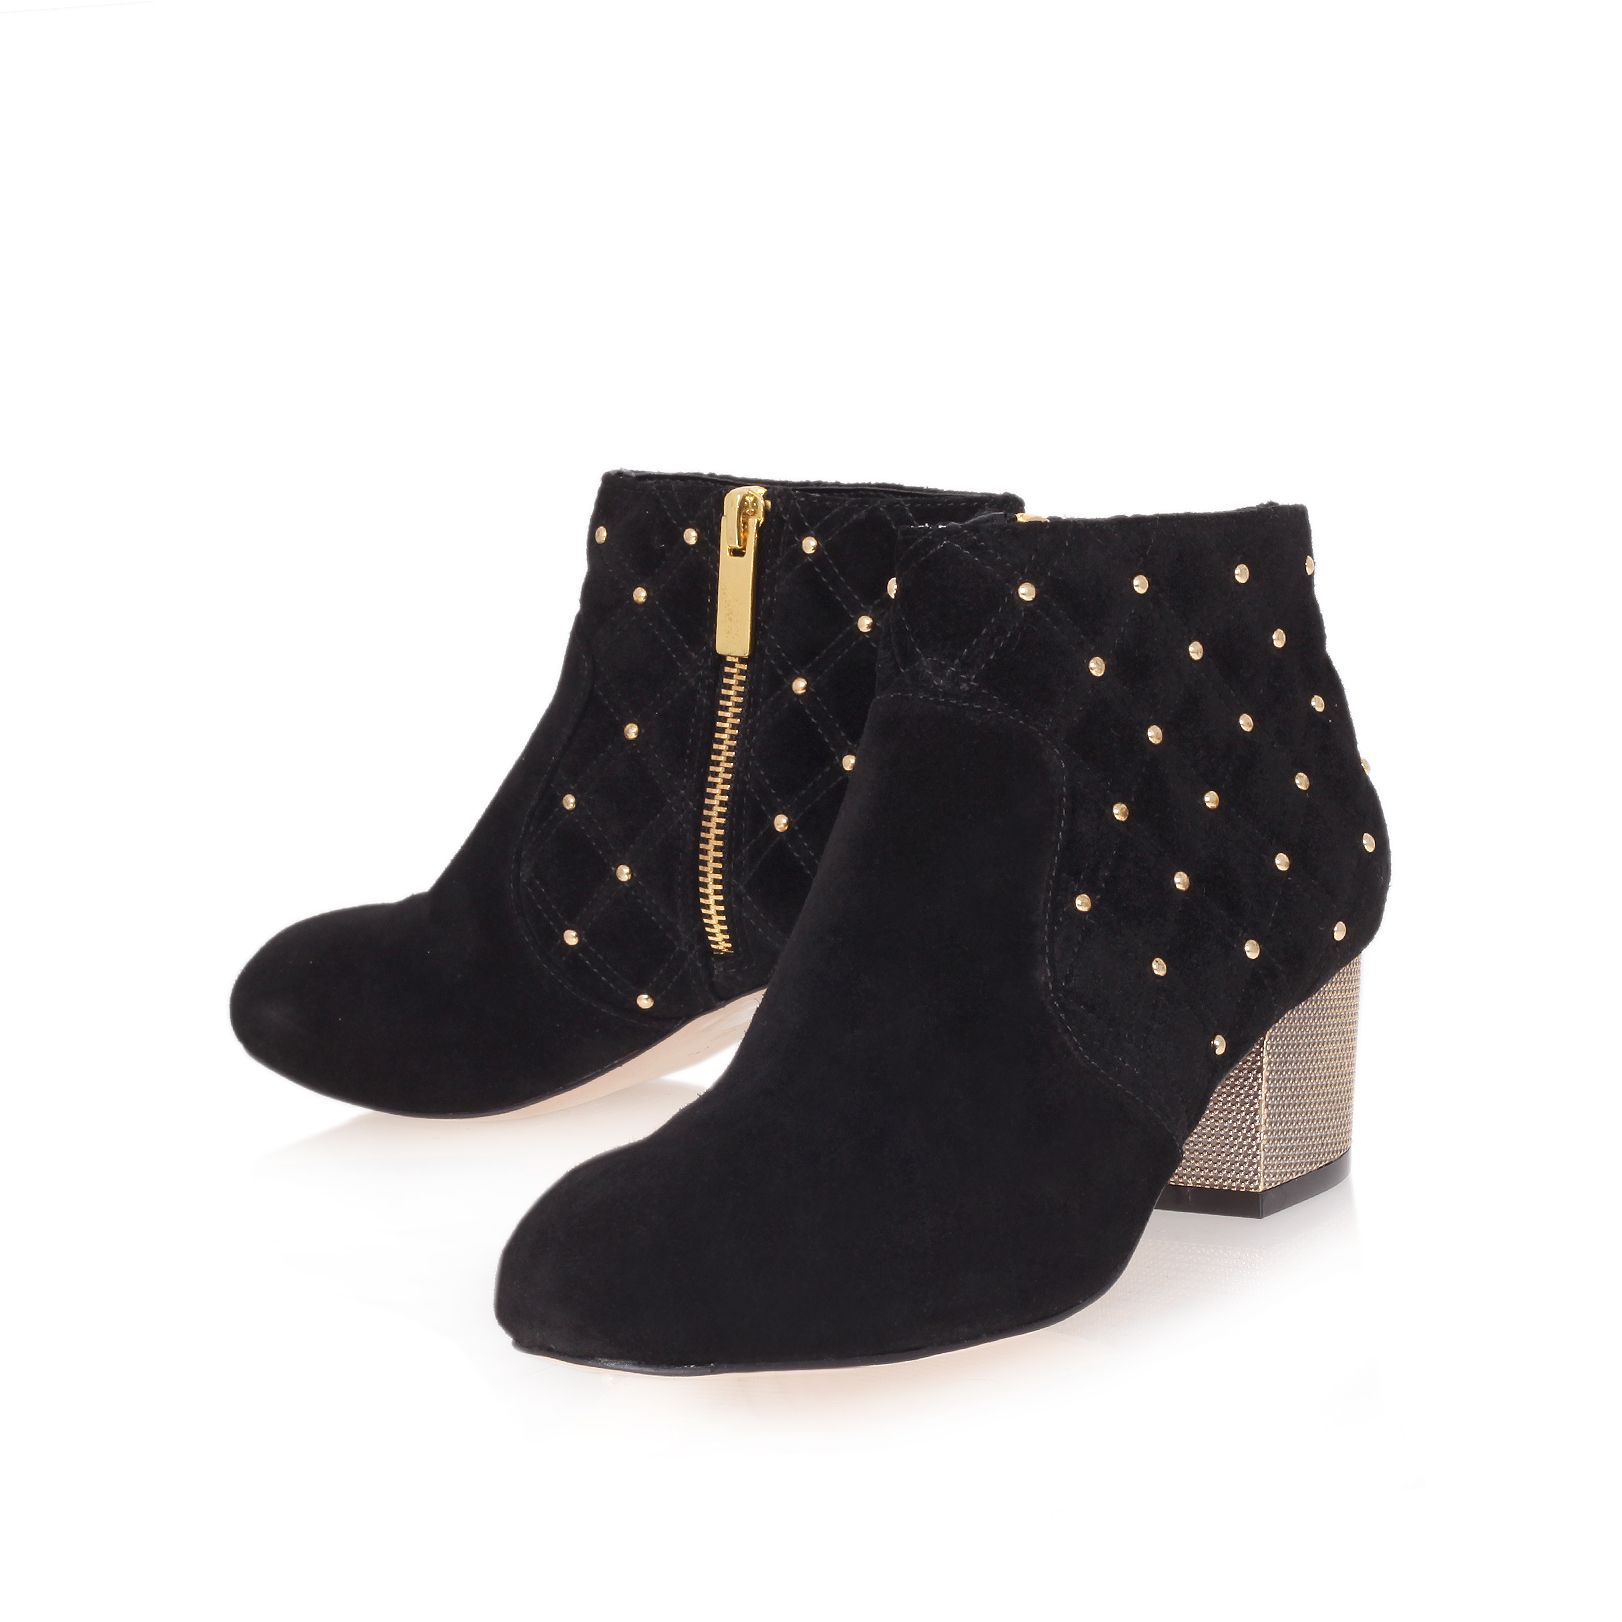 Carvela Kurt Geiger Leather Swallow Ankle Boots in Black